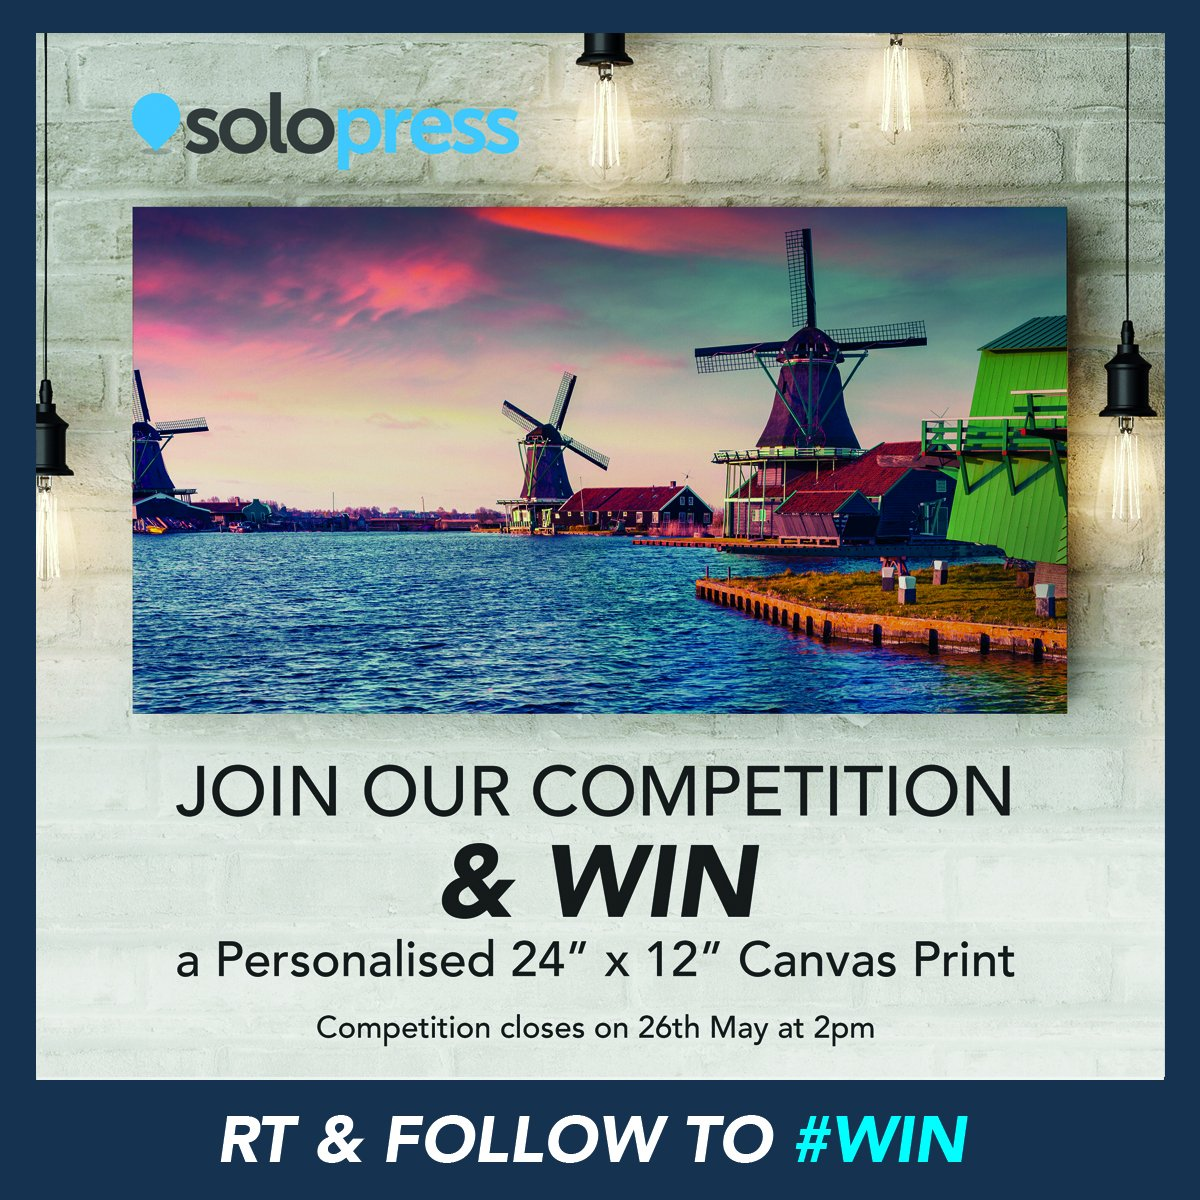 RETWEET &amp; FOLLOW @Solopress before 2pm tomorrow to enter our #competition to #WIN a personalised #Canvas! #competitions #giveaway #giveaways<br>http://pic.twitter.com/YuijJq0D3M